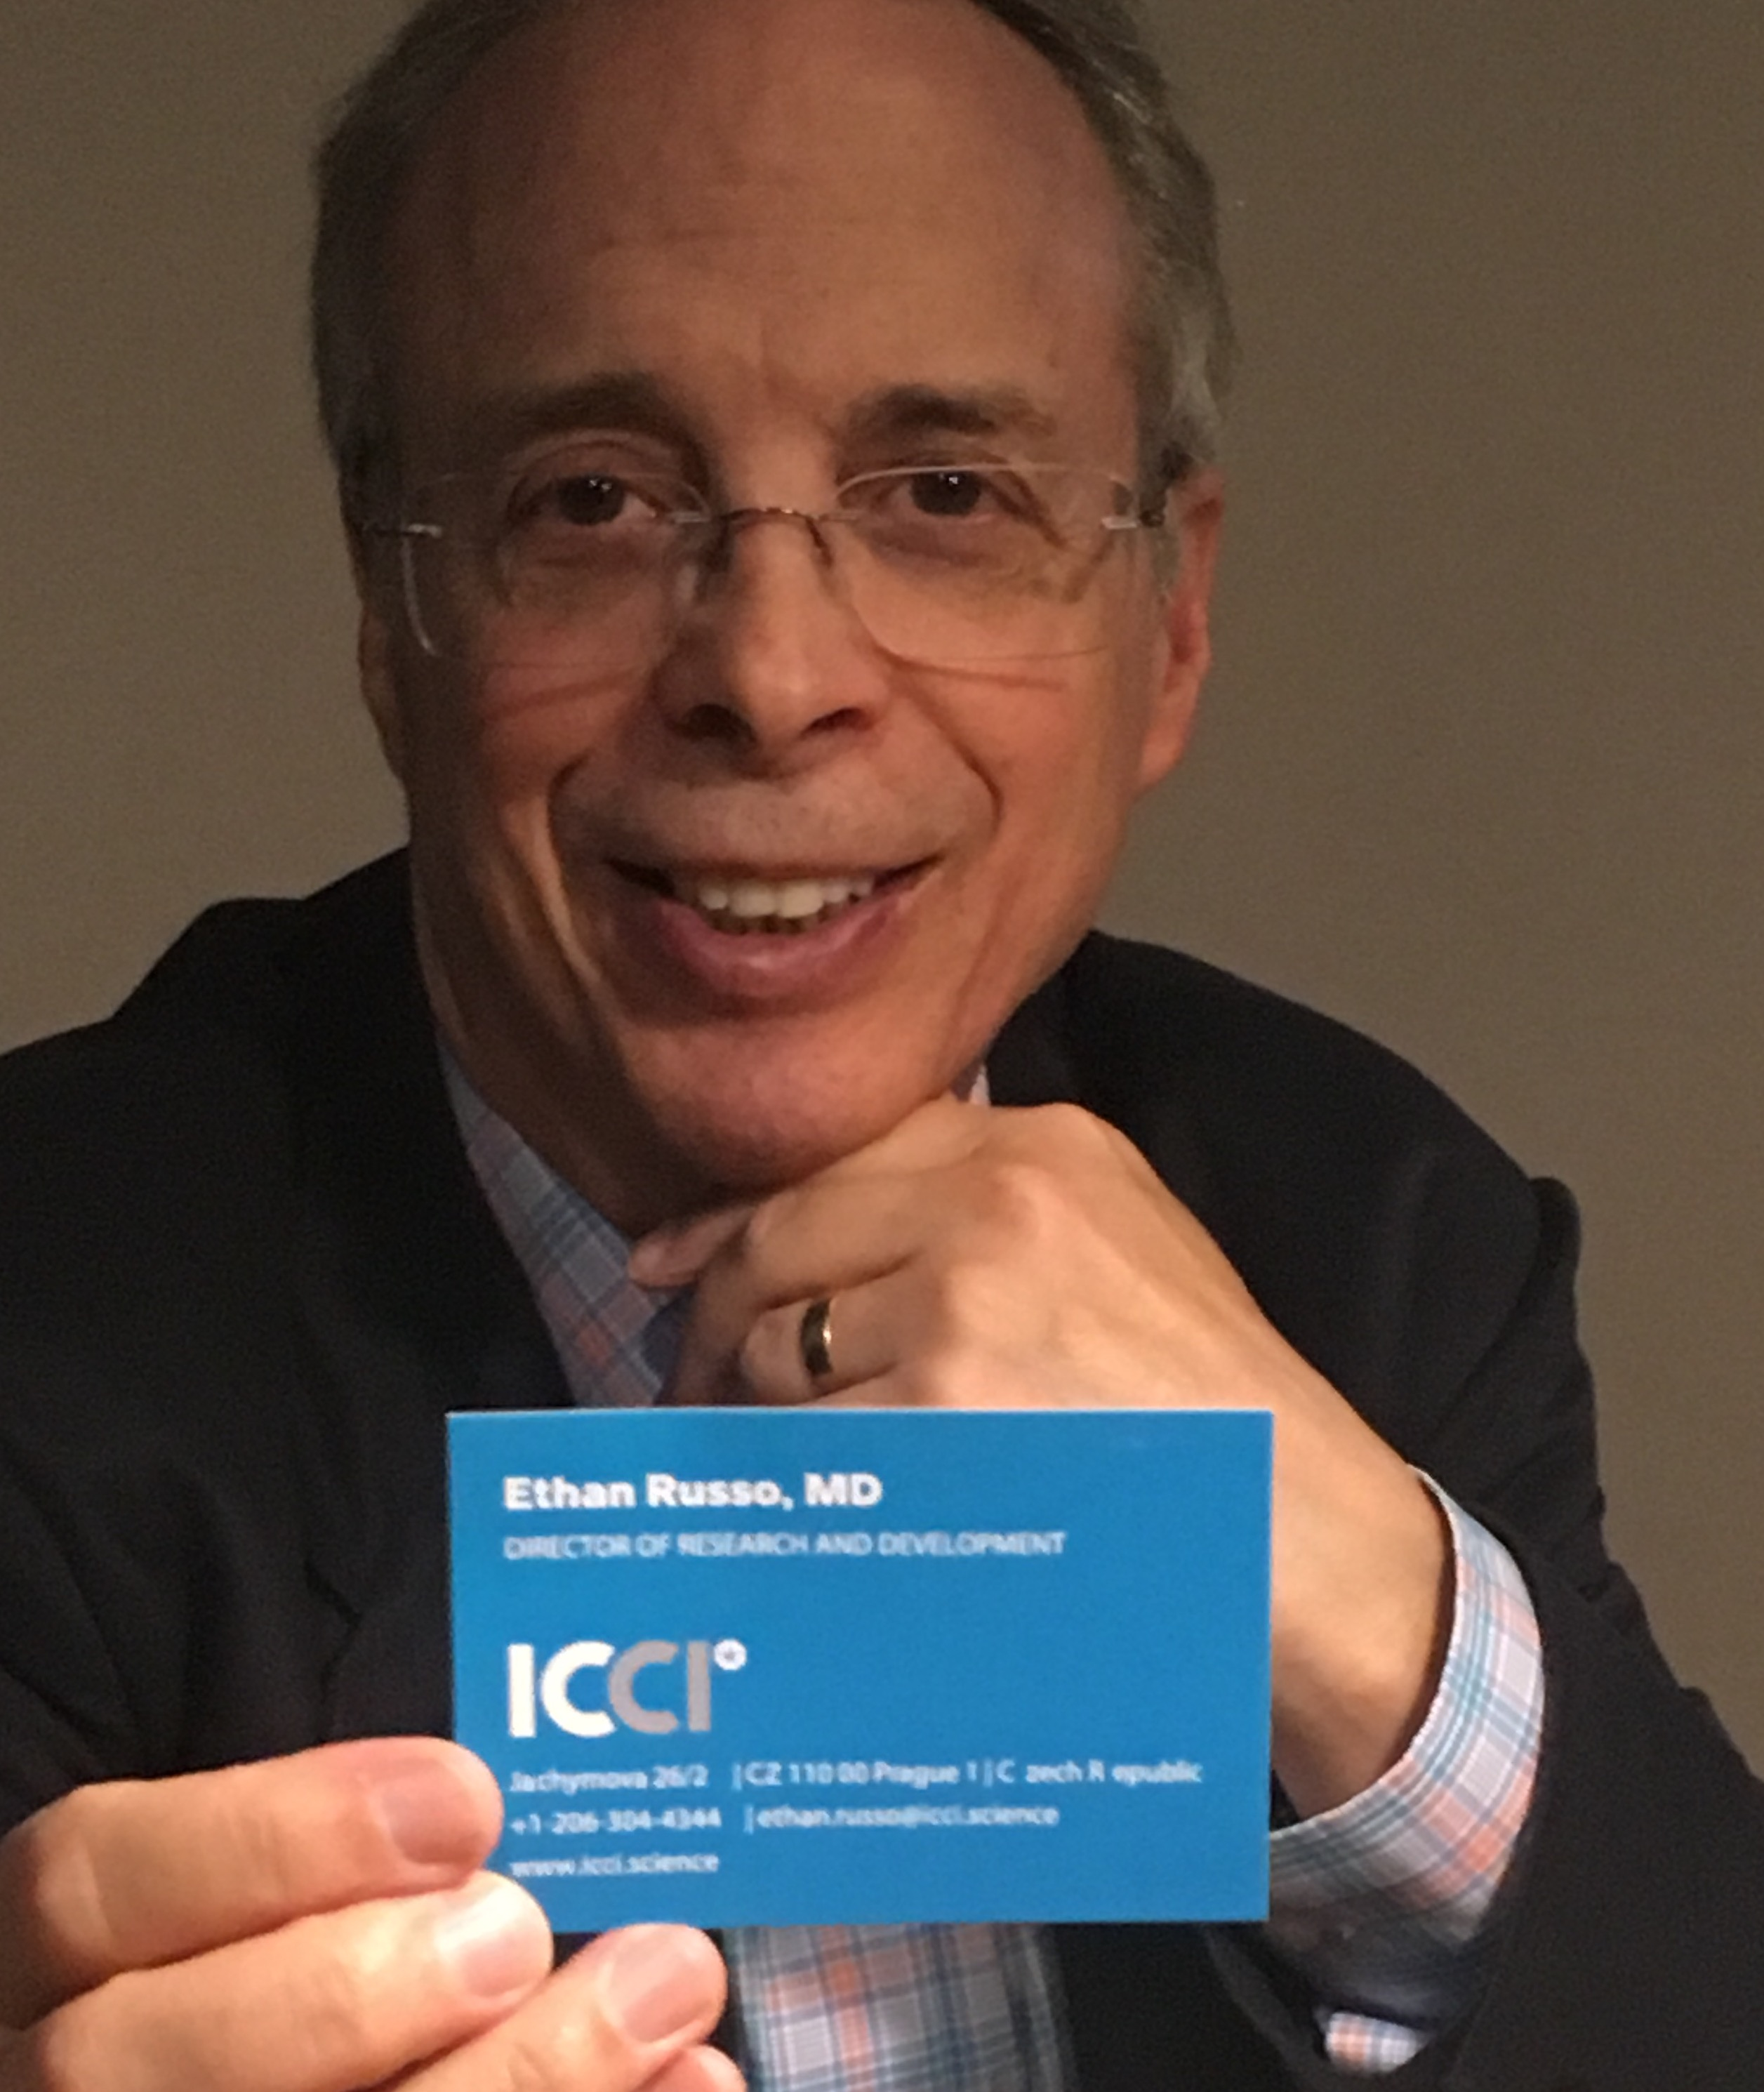 Photograph of Dr. Ethan Russo holding in a foreground a business card with the ICCI logo and his name on it.